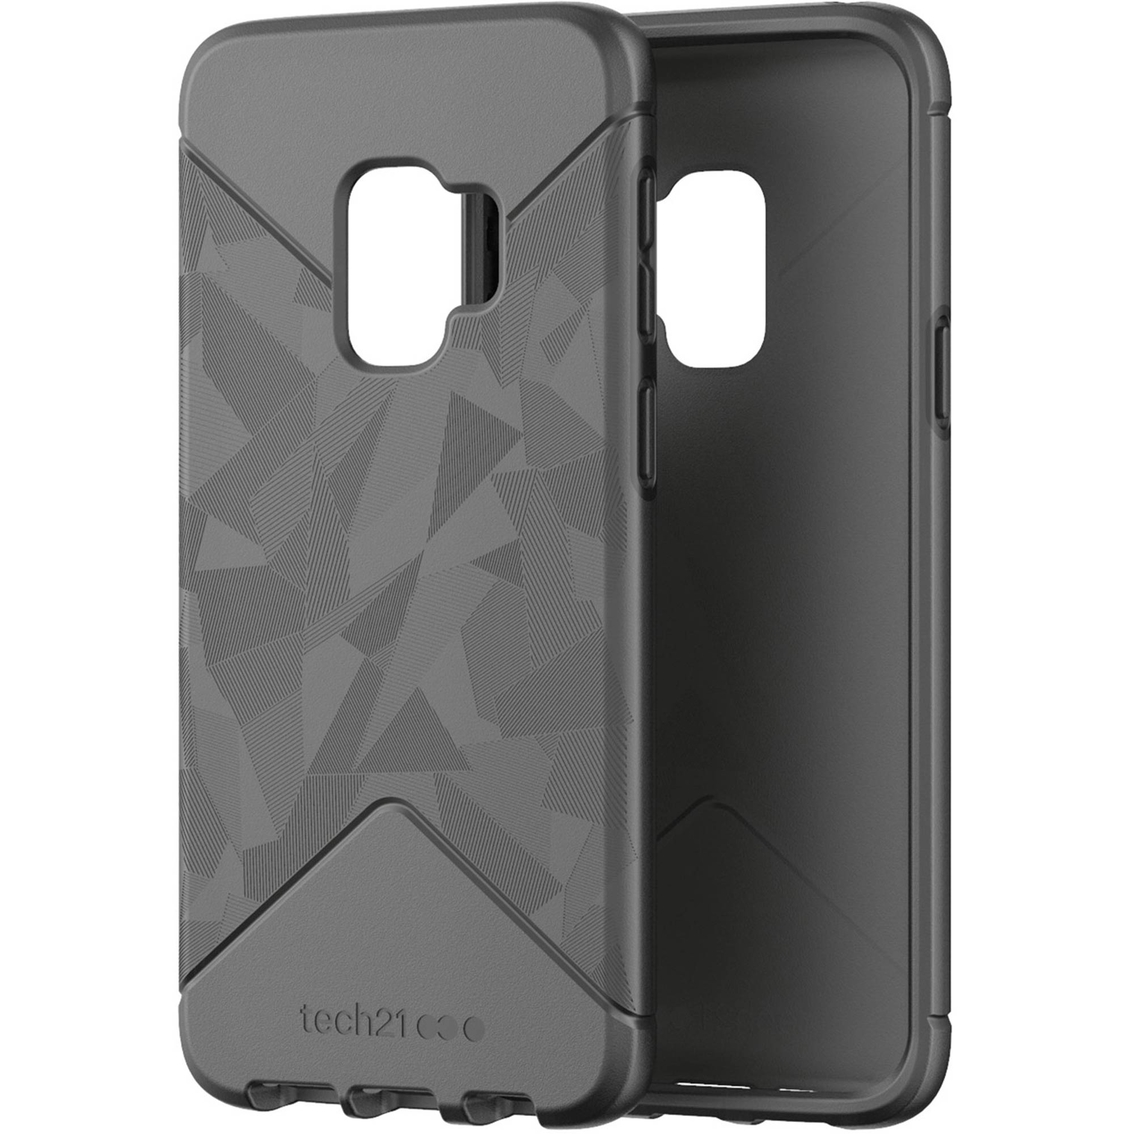 newest collection ff2b7 61960 Tech21 Evo Tactical Samsung Galaxy S9 Case | Cell Phone Cases ...